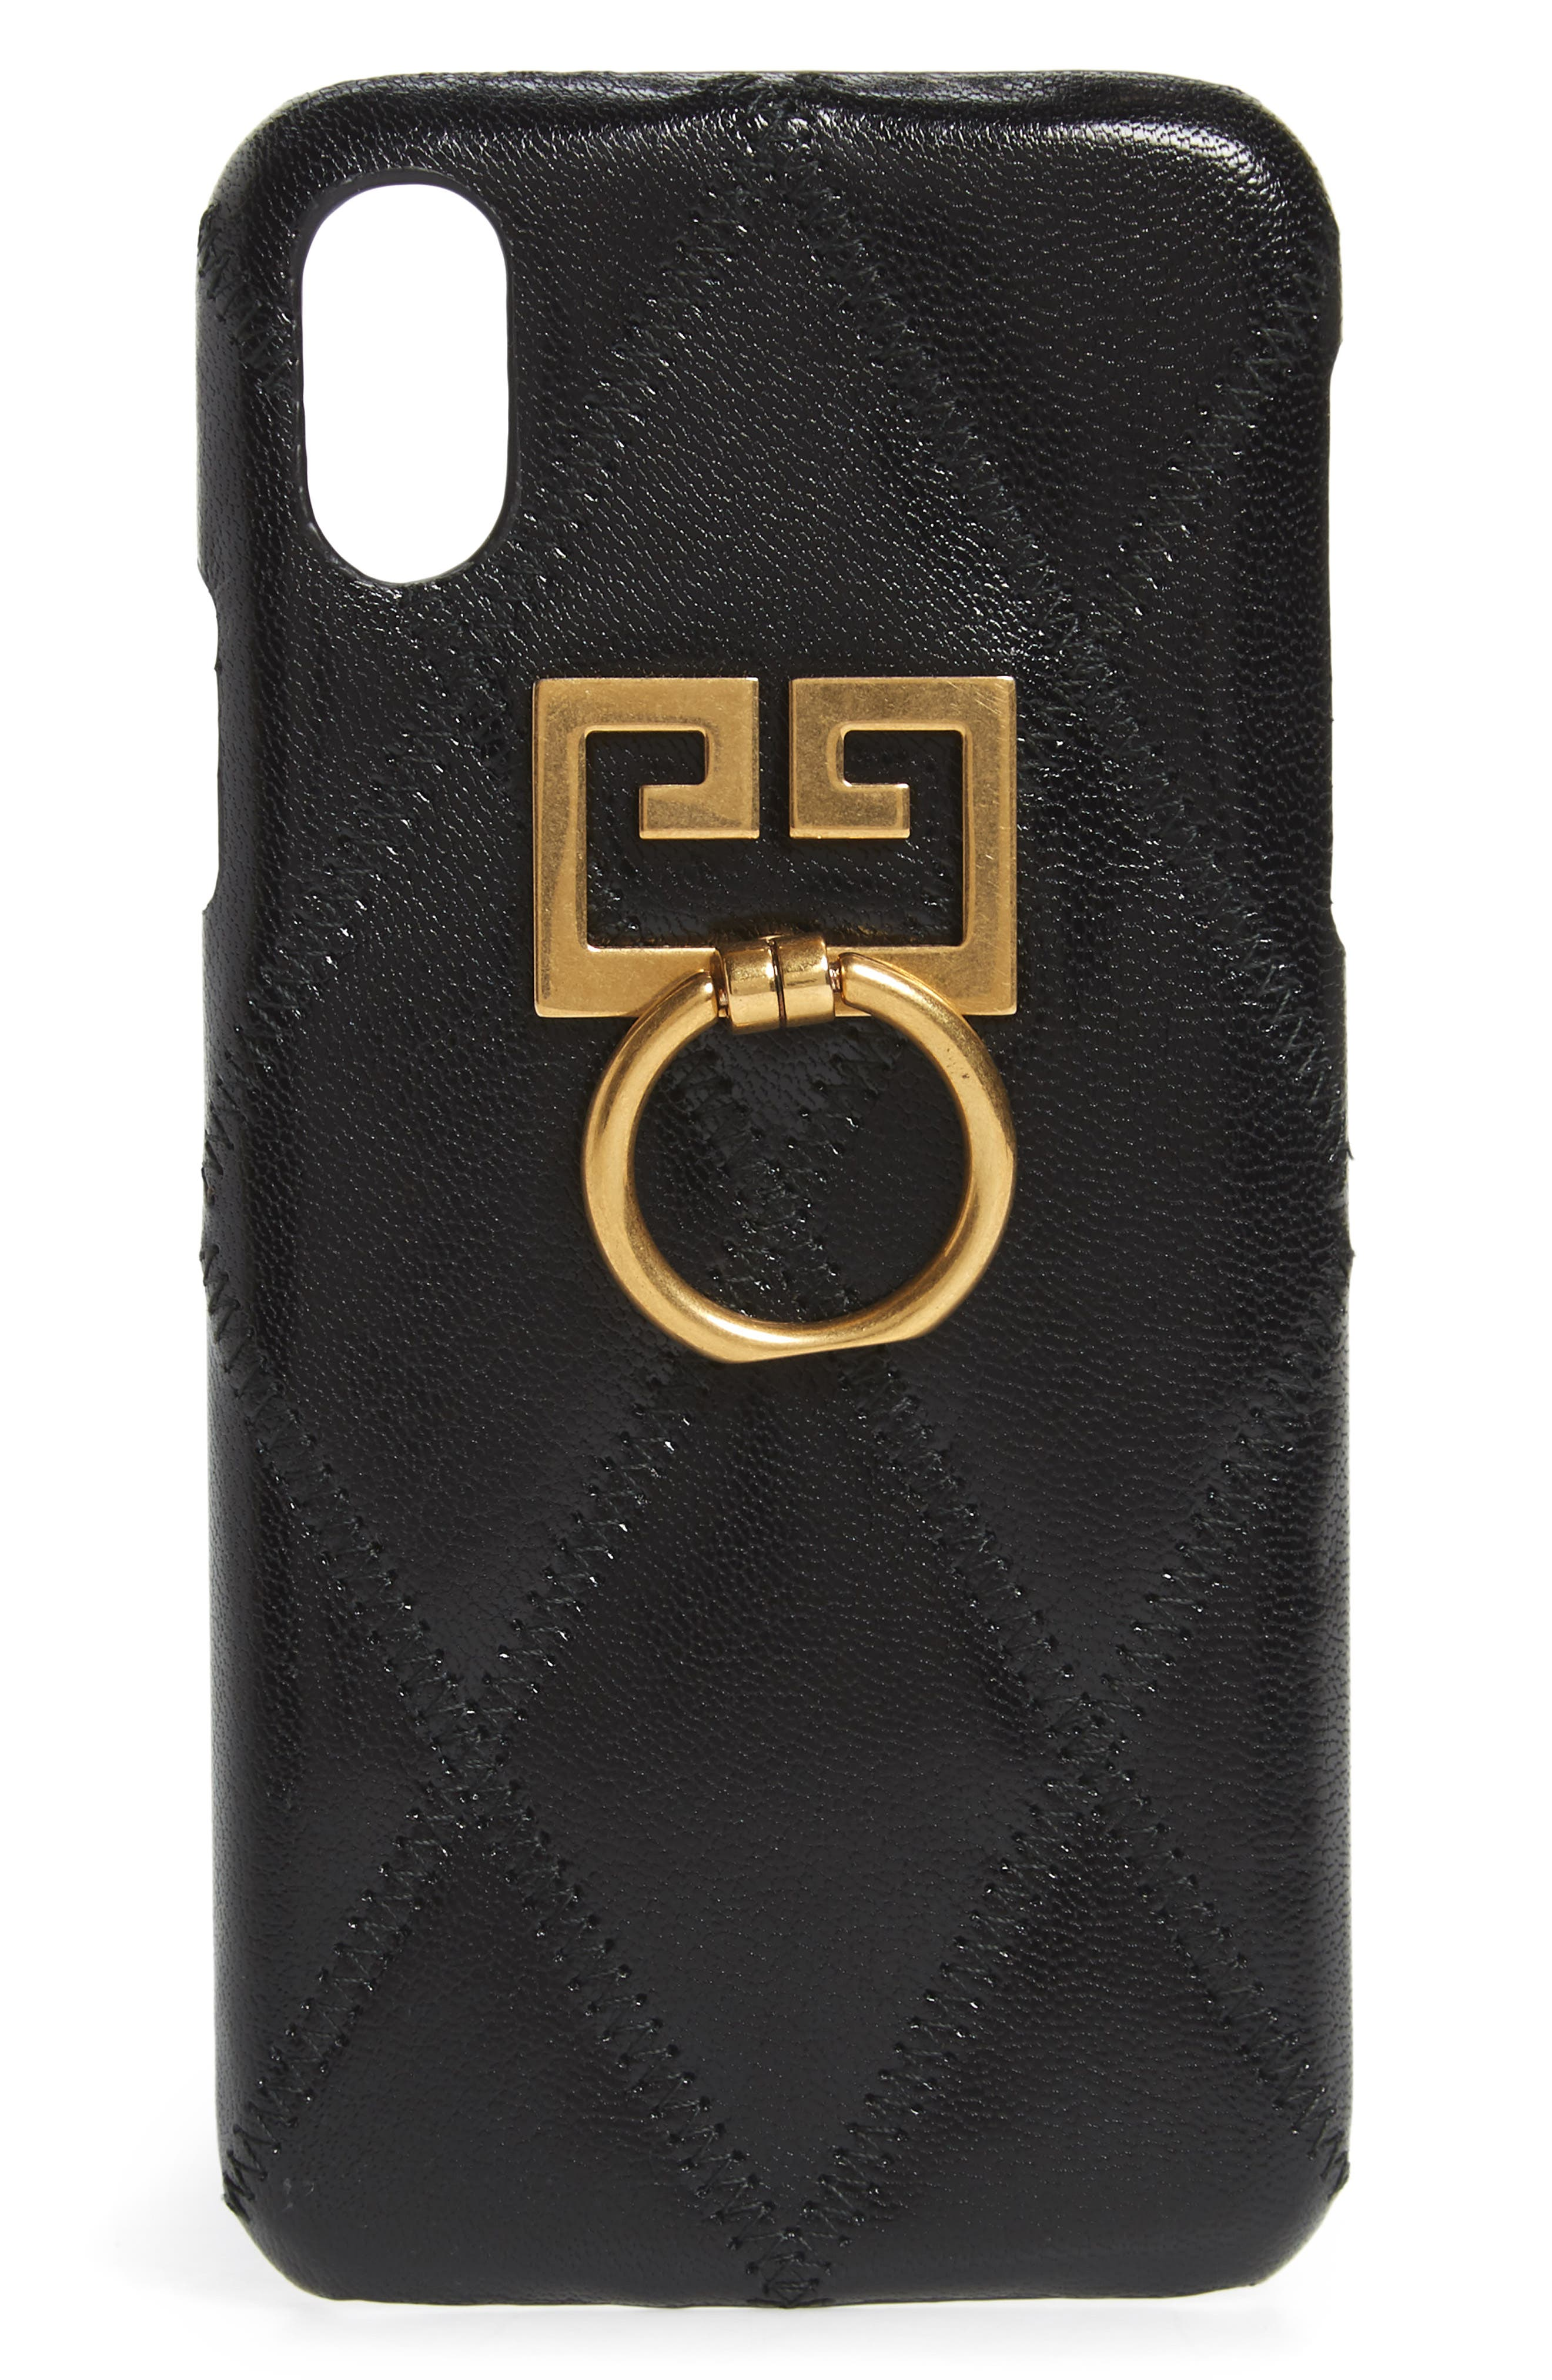 ysl phone case iphone 7